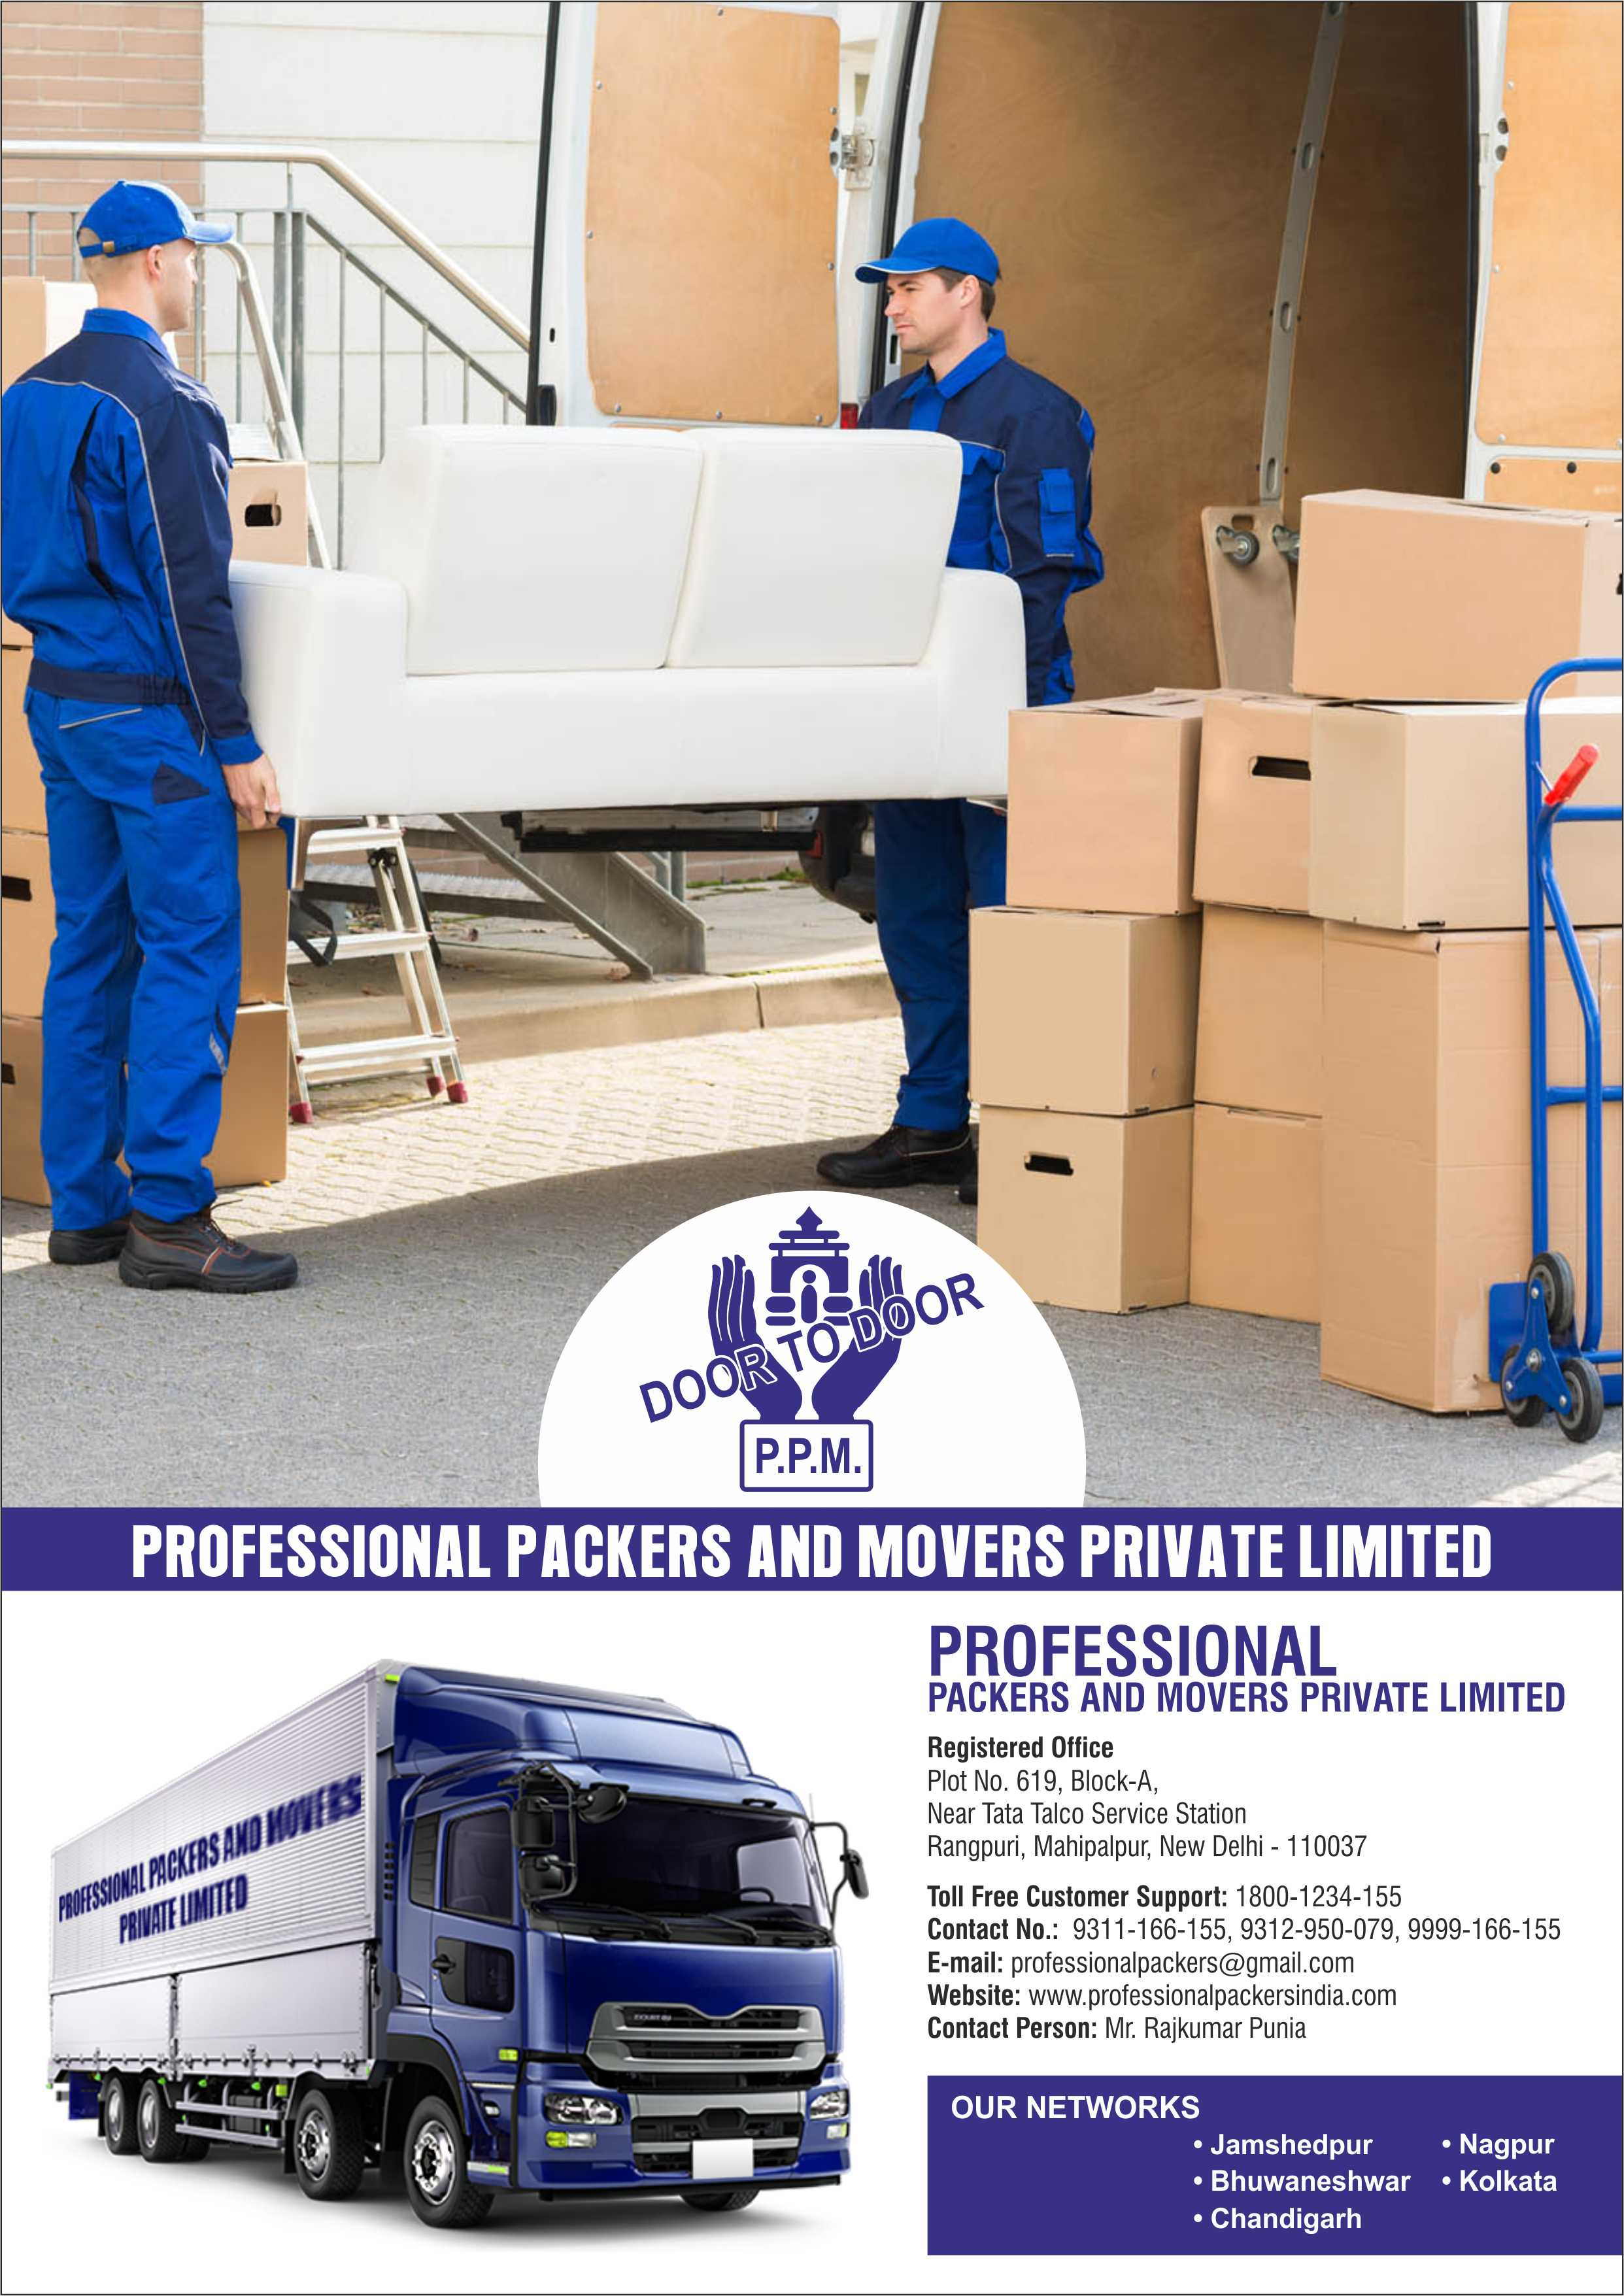 Professional - Packers And Movers in Chennai -Services-Moving & Storage Services-Chennai